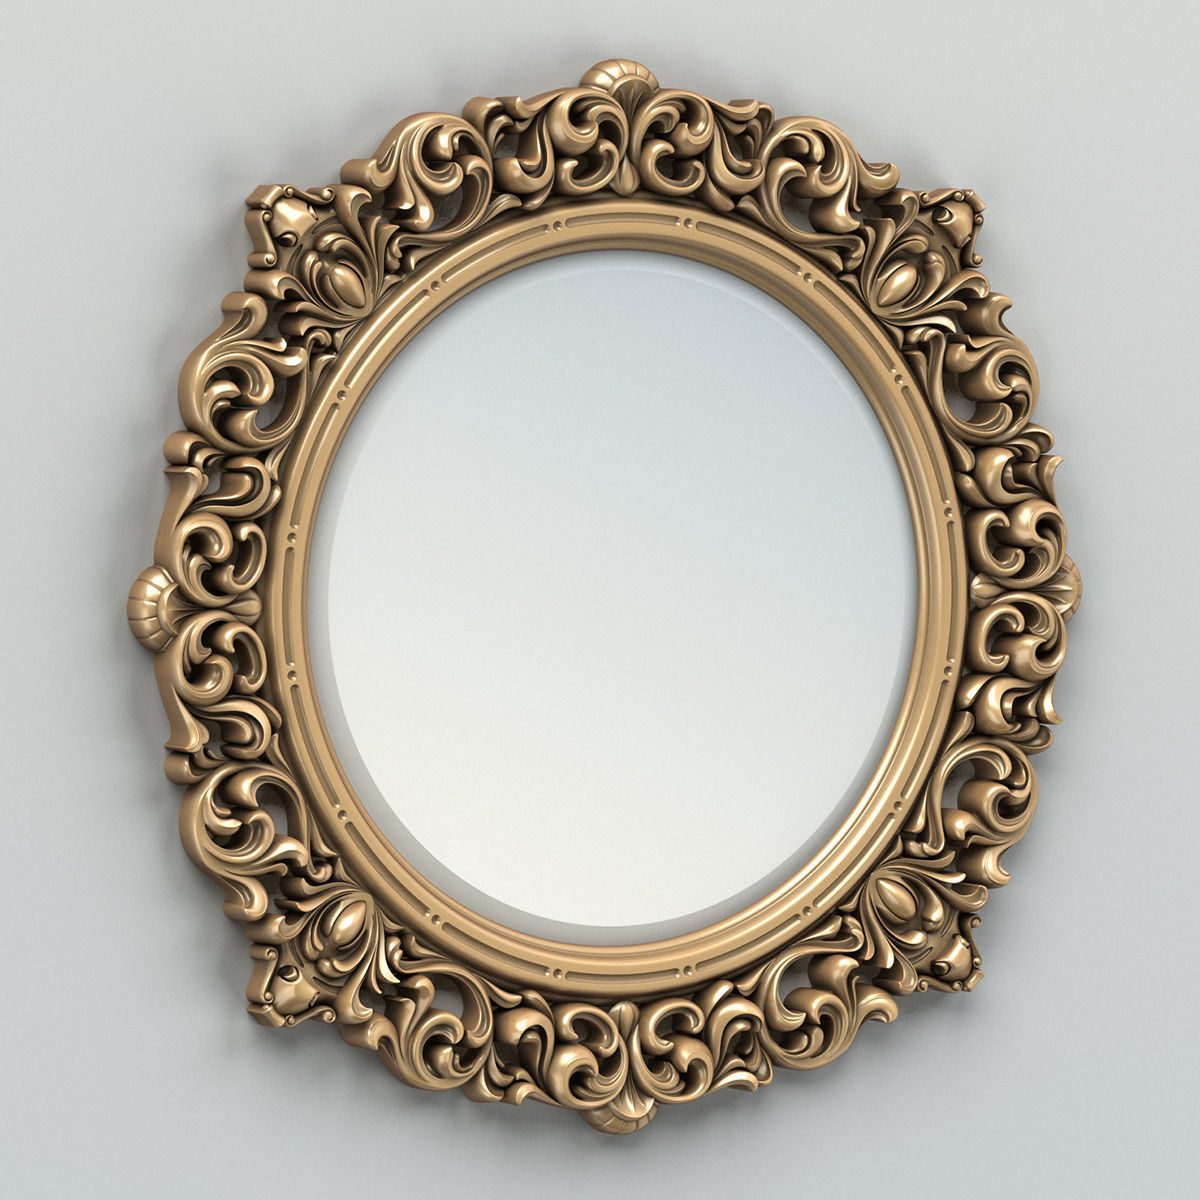 3D Round mirror frame 001 classic   CGTrader